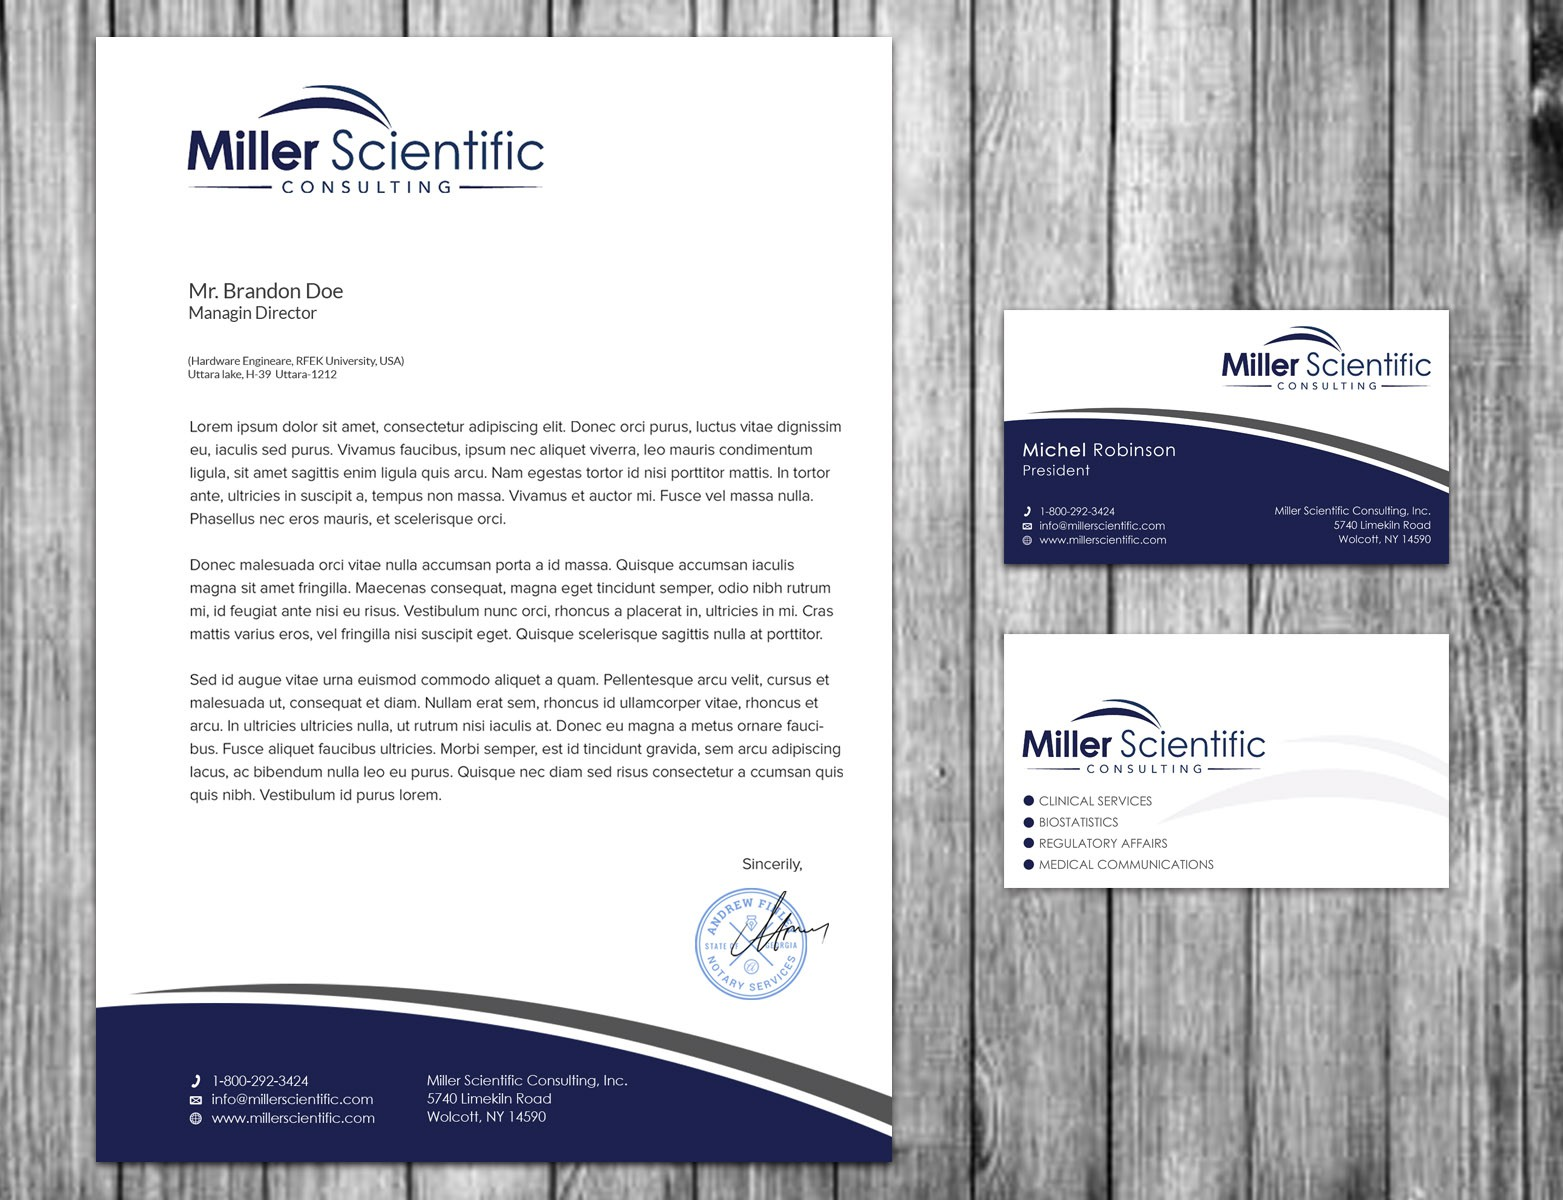 Help Miller Scientific Consulting design a business card